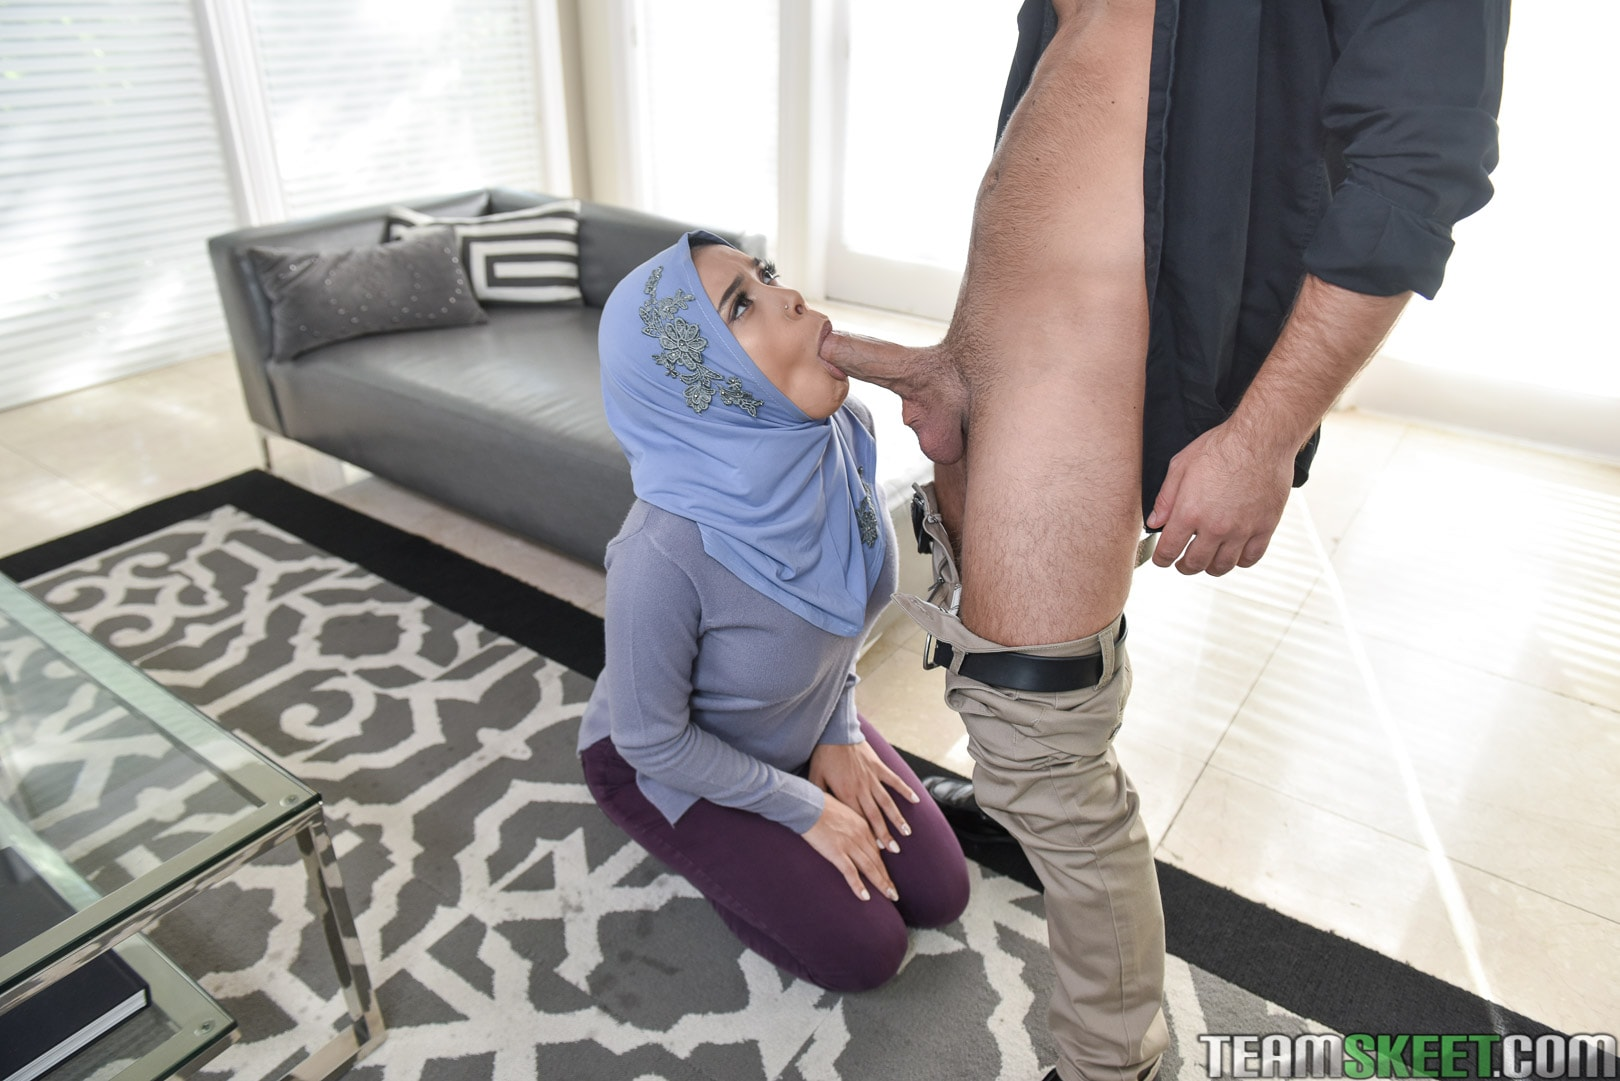 Aaliyah Hadid - Teenage Anal In Her Hijab | Picture (144)